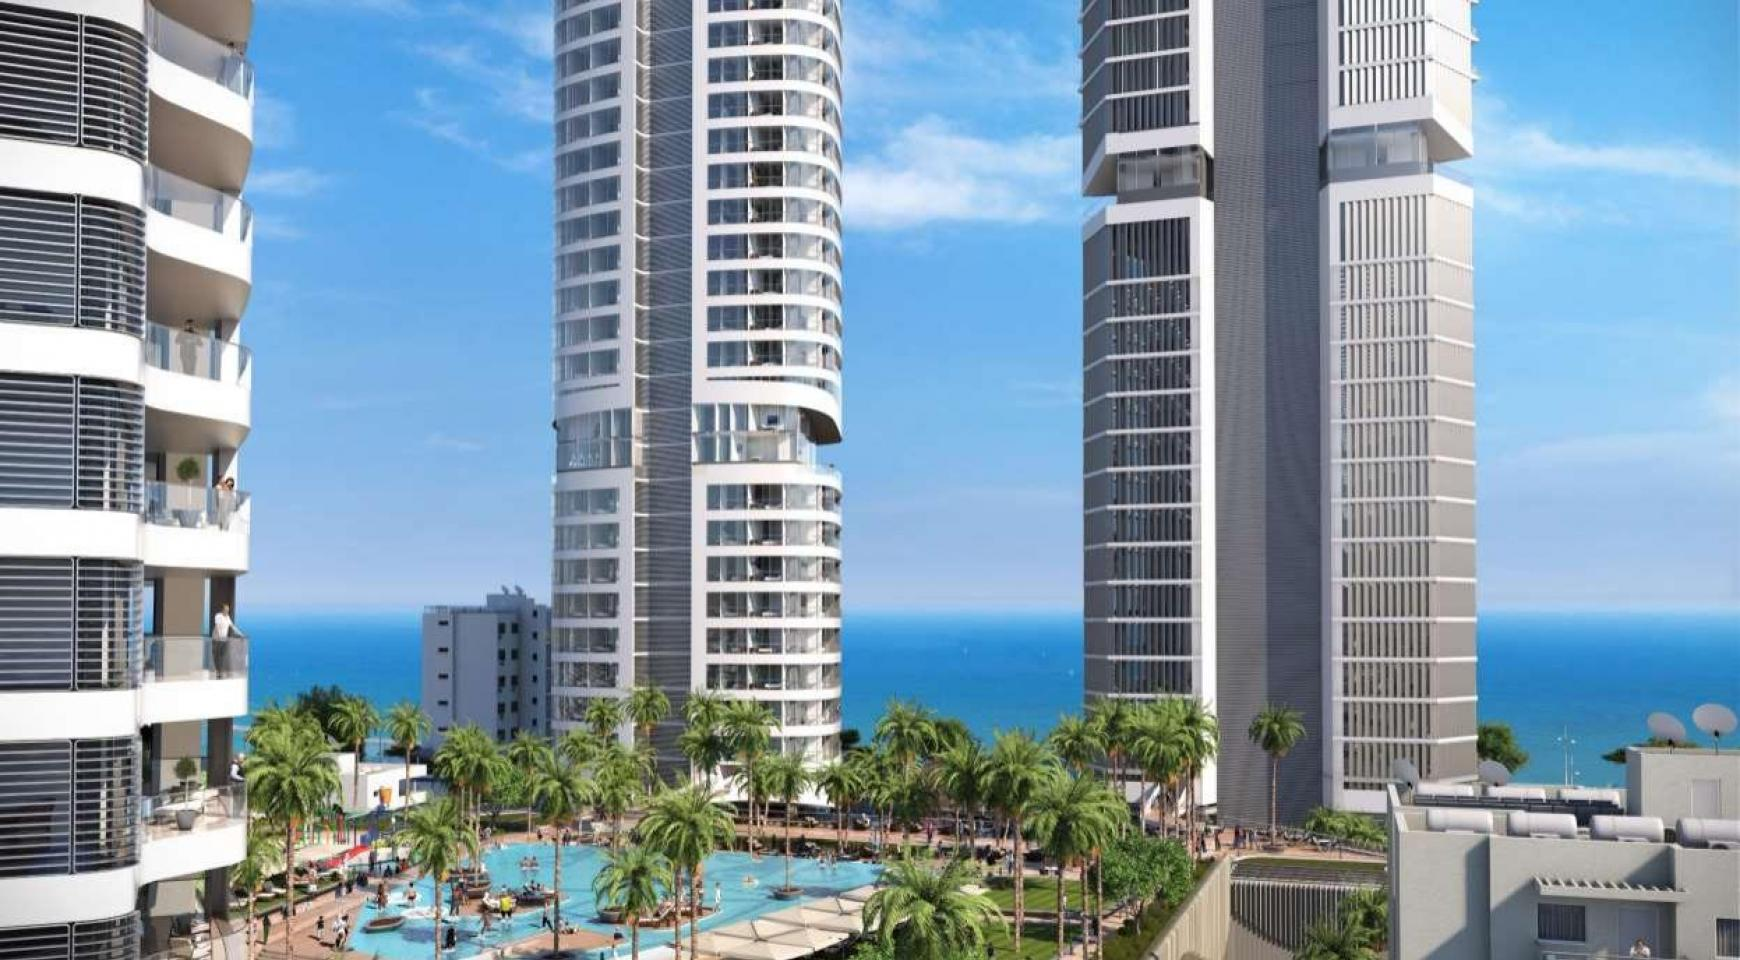 2 Bedroom Apartment in a New Project by the Sea in the City Centre - 1